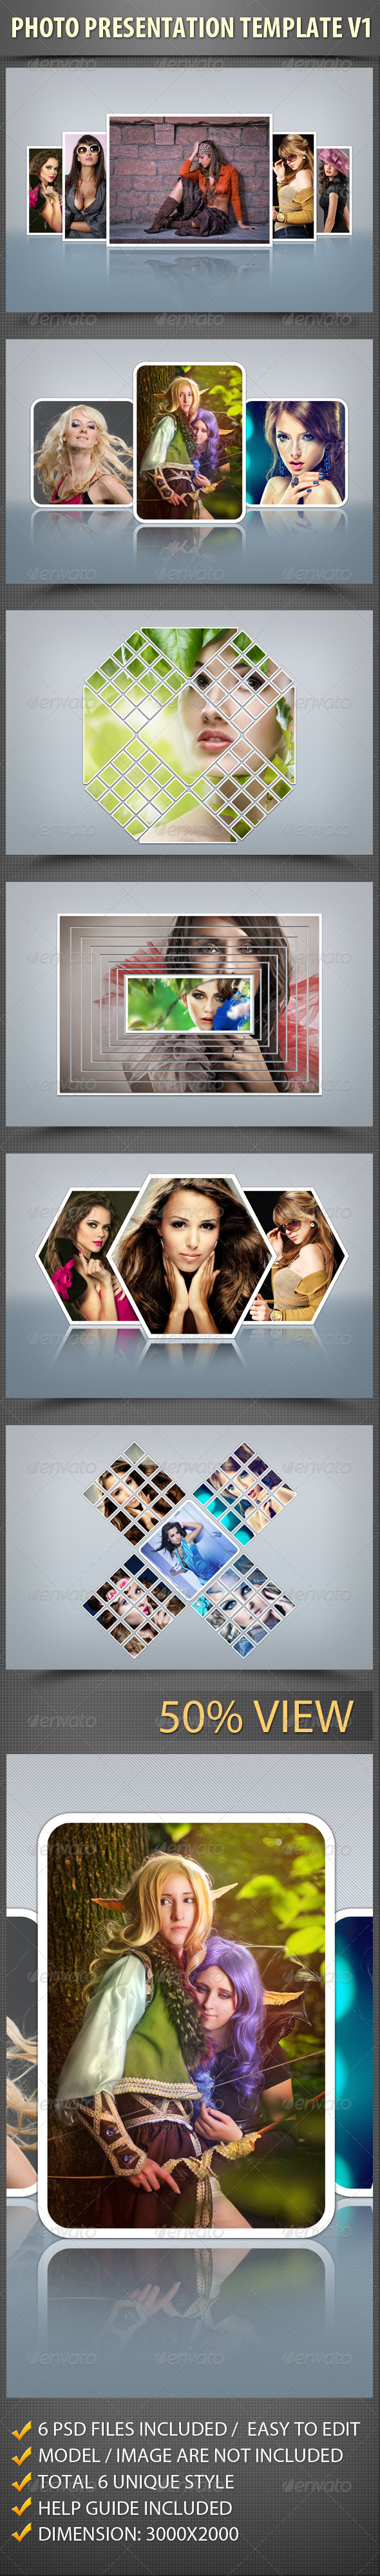 Photo  Presentation Template V1 - Photo Templates Graphics